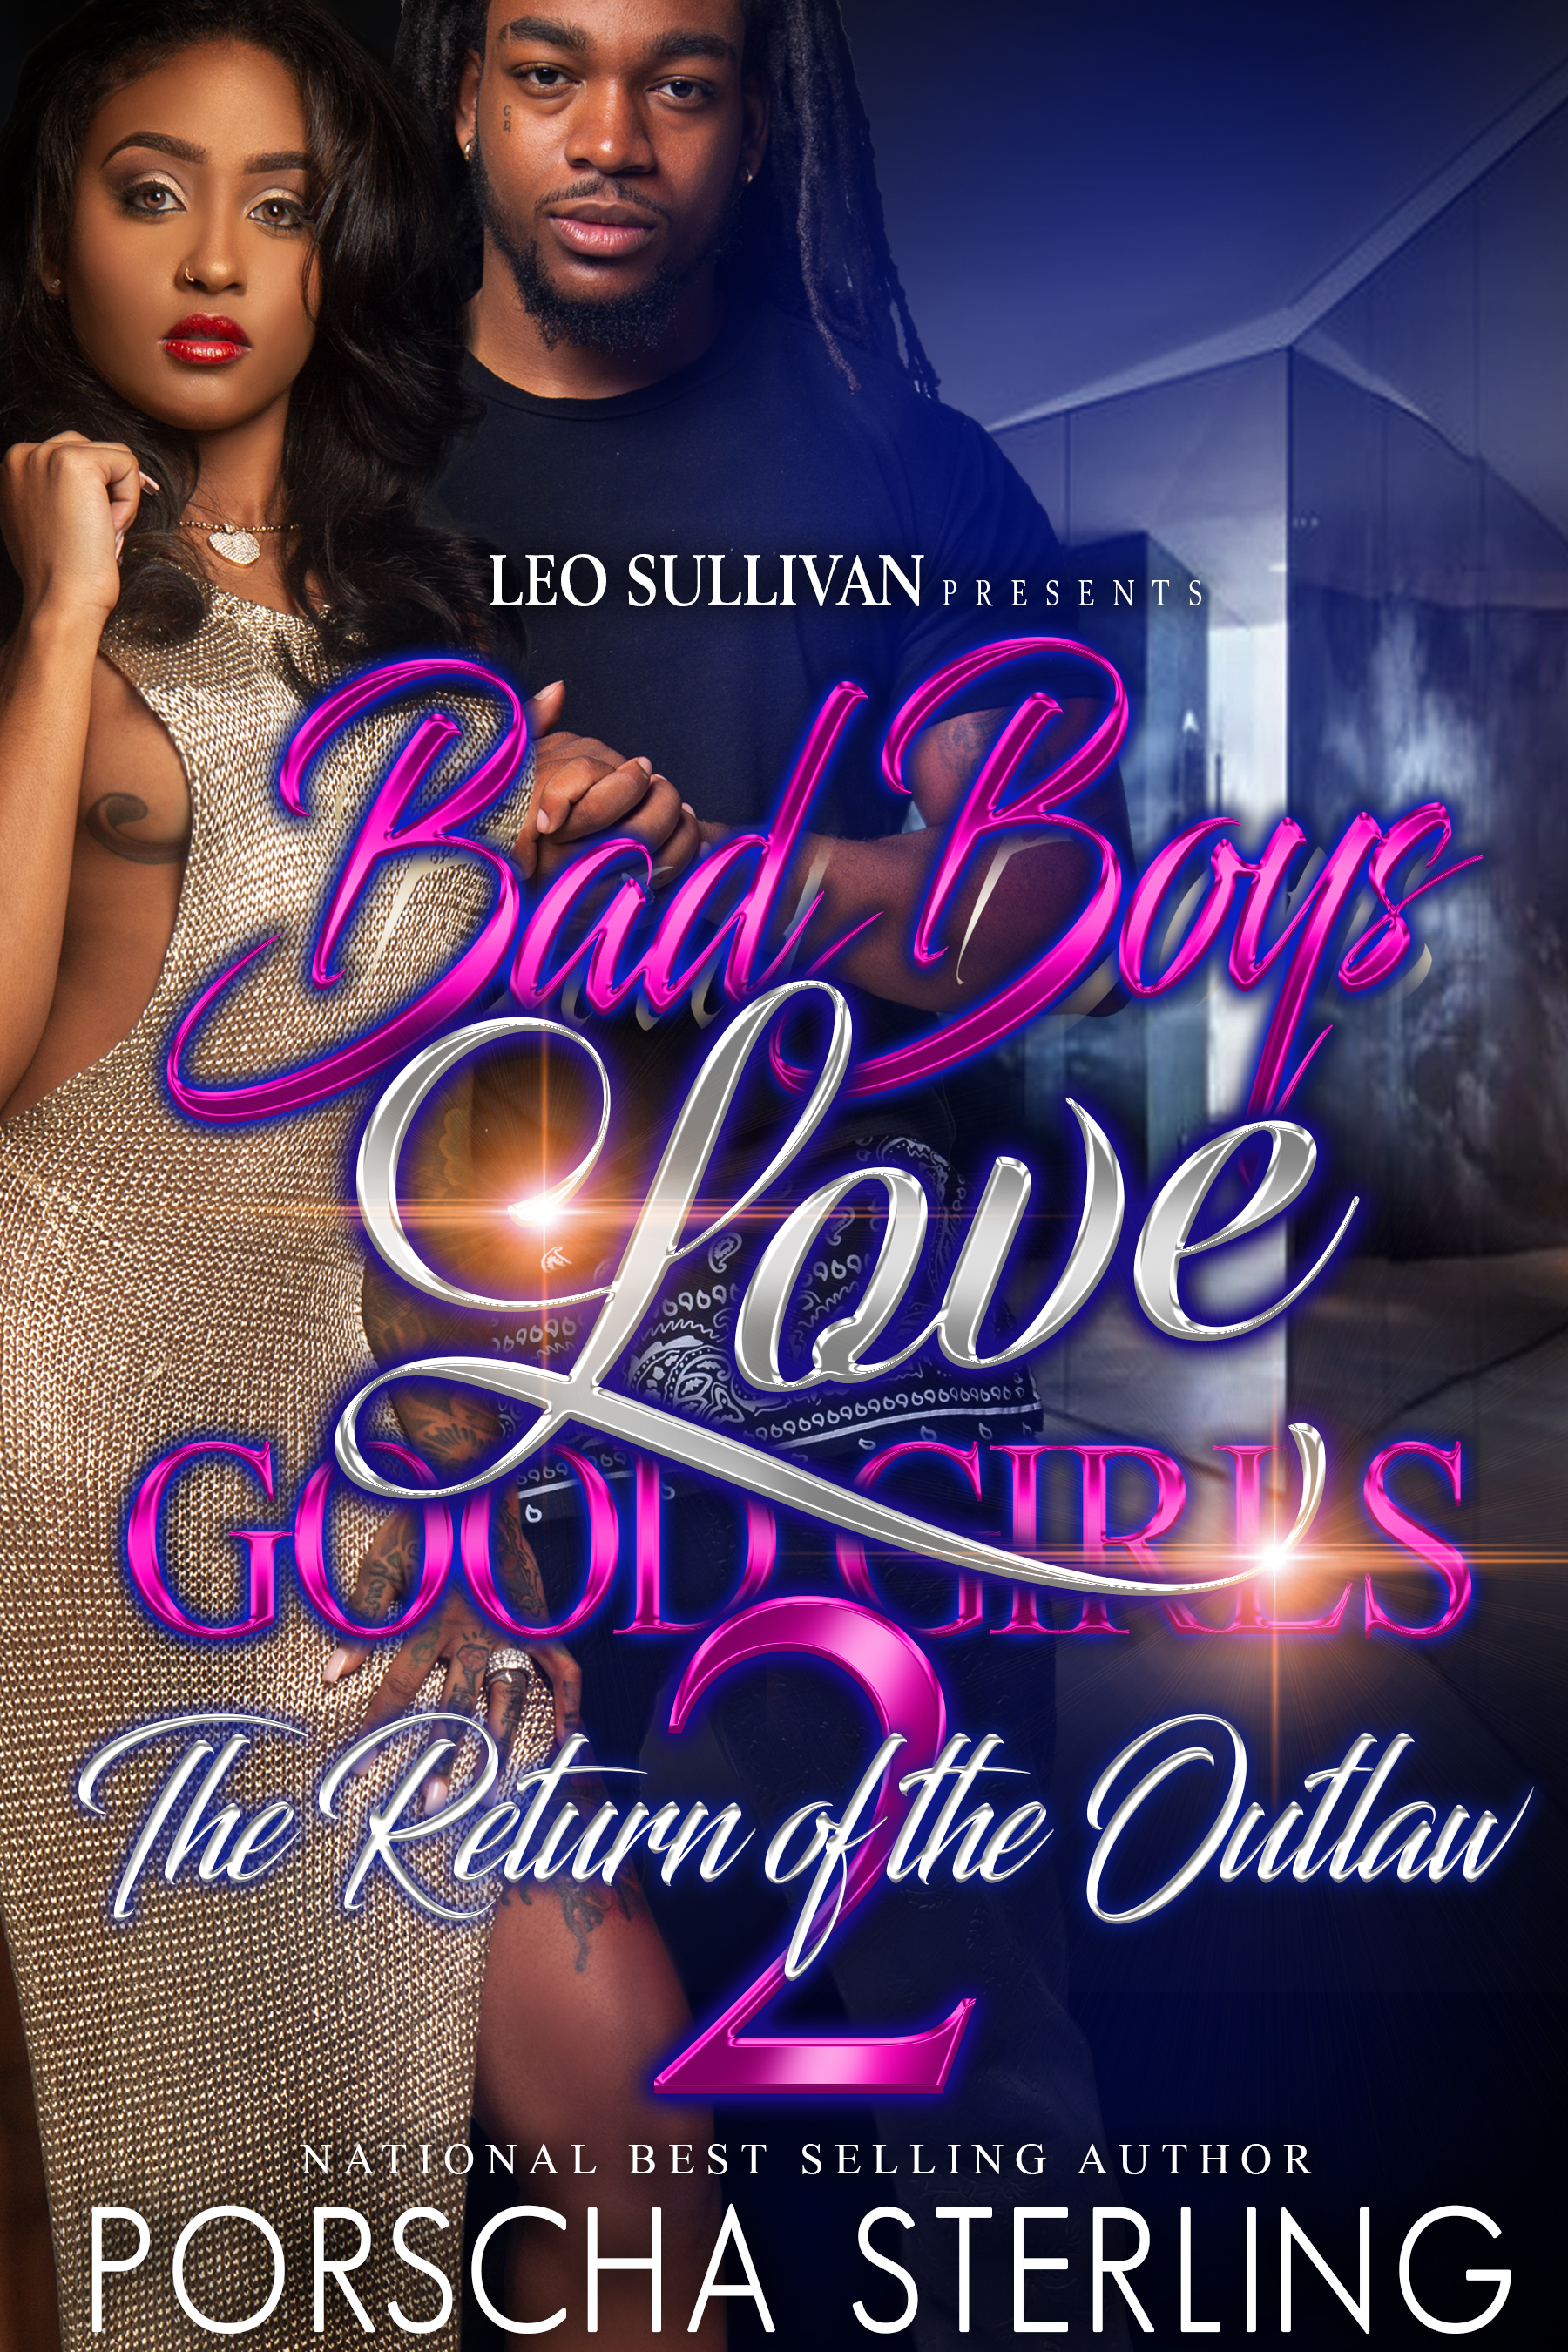 Bad Boys Love Good Girls: The Return of the Outlaw 2